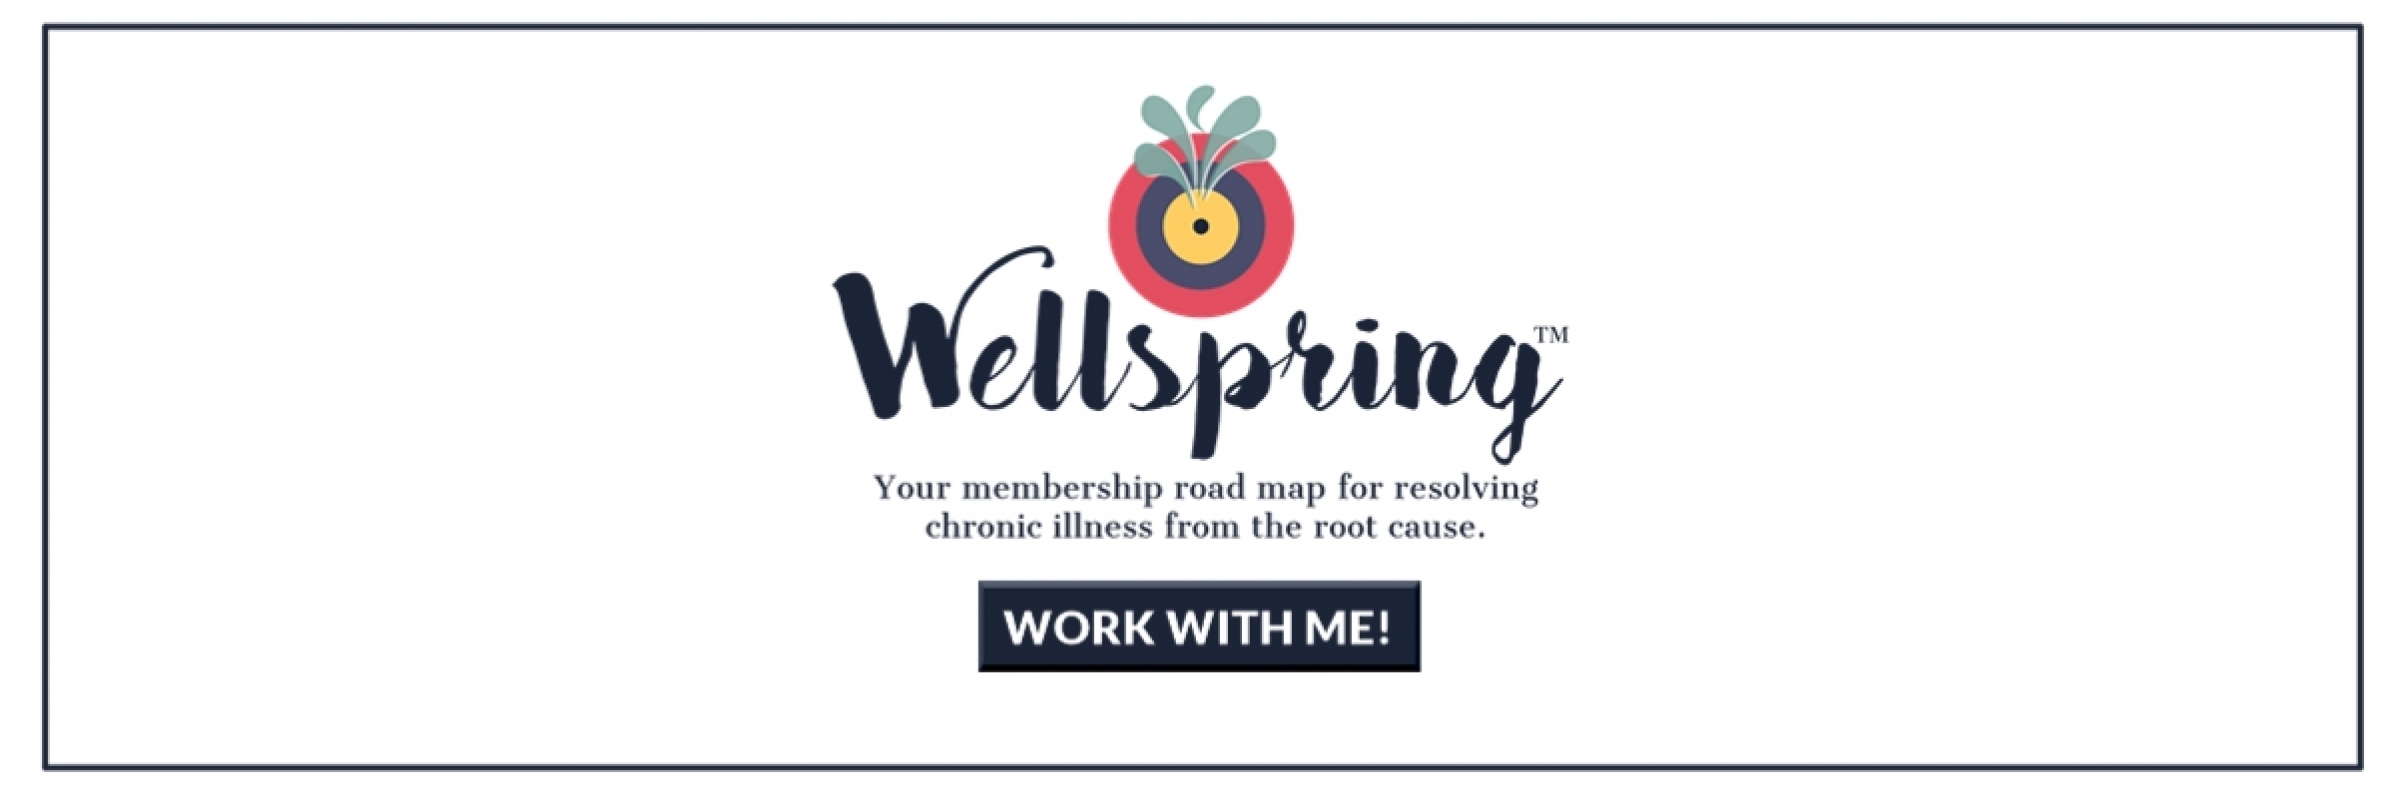 Wellspring Work With Me